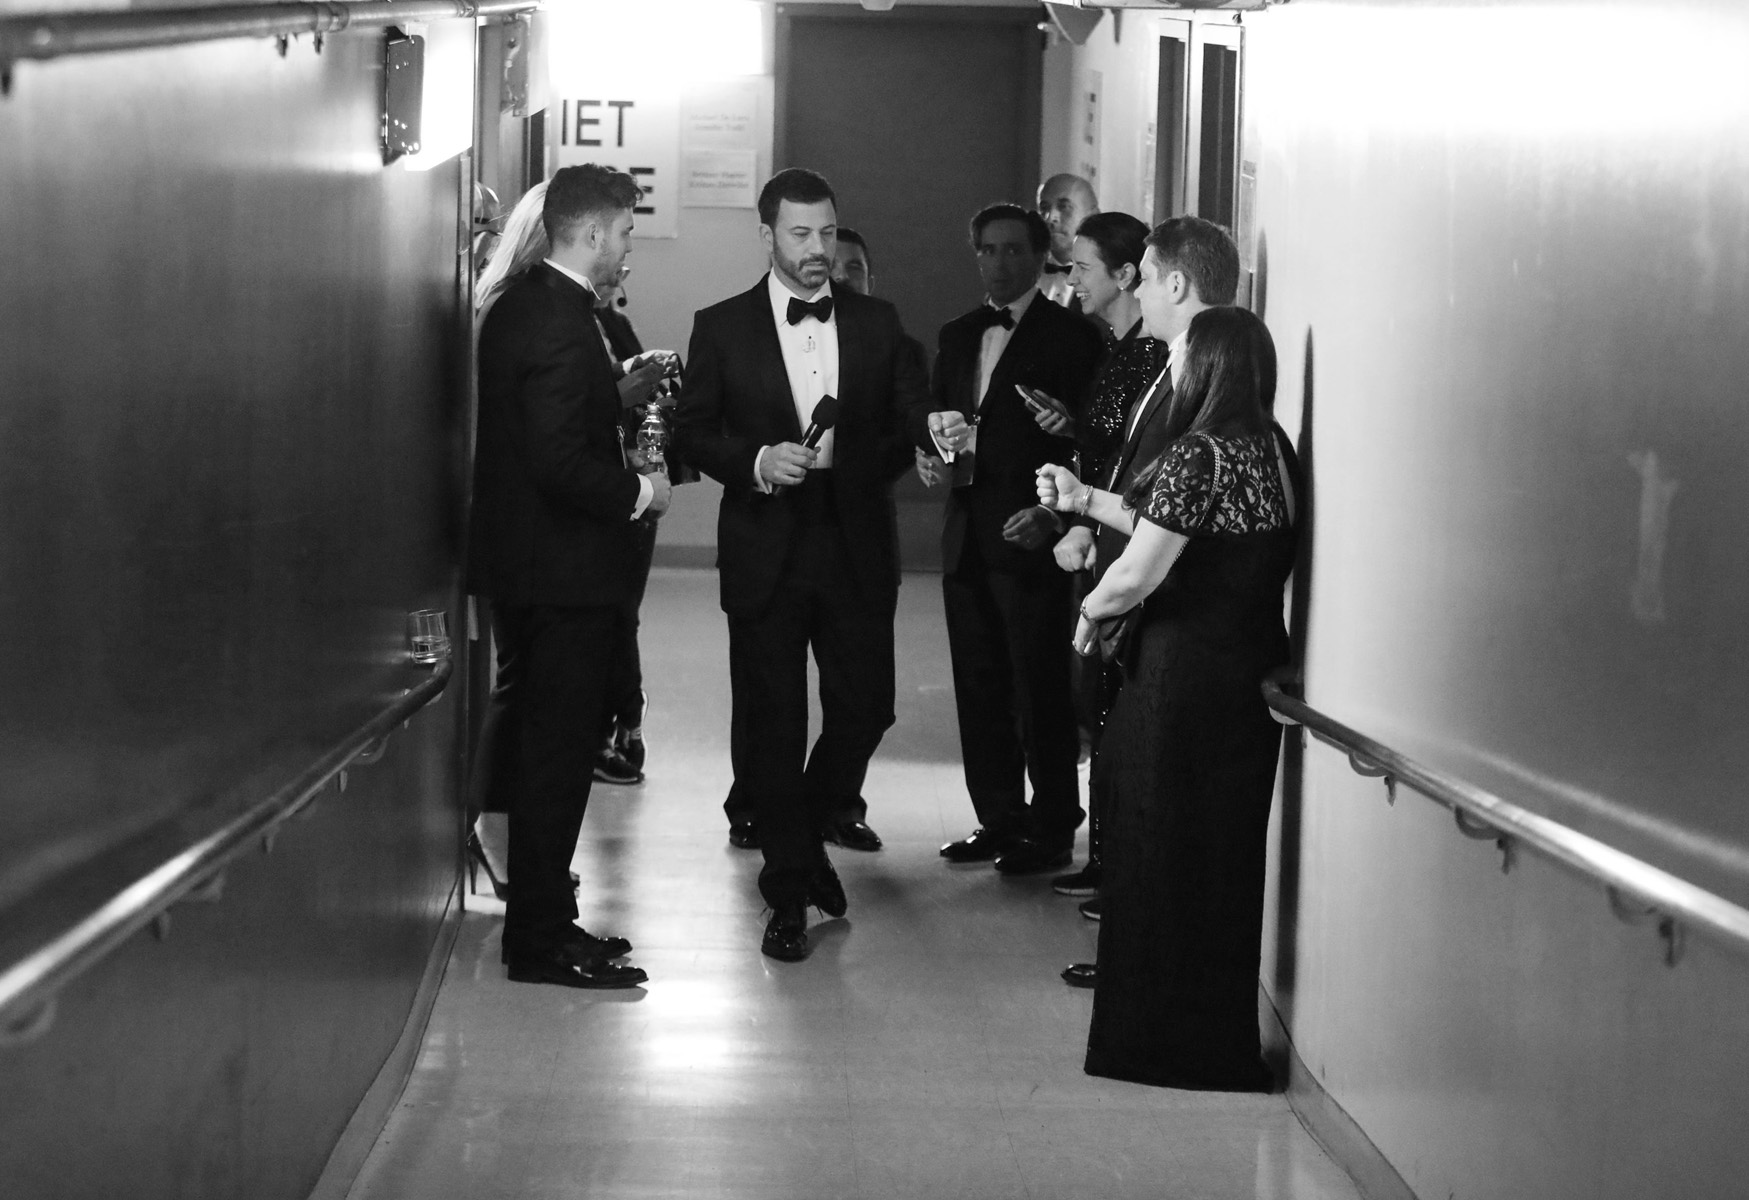 Jimmy Kimmel appears backstage at the Oscars on Sunday, Feb. 26, 2017, at the Dolby Theatre in Los Angeles. (Photo by Matt Sayles/Invision/AP)